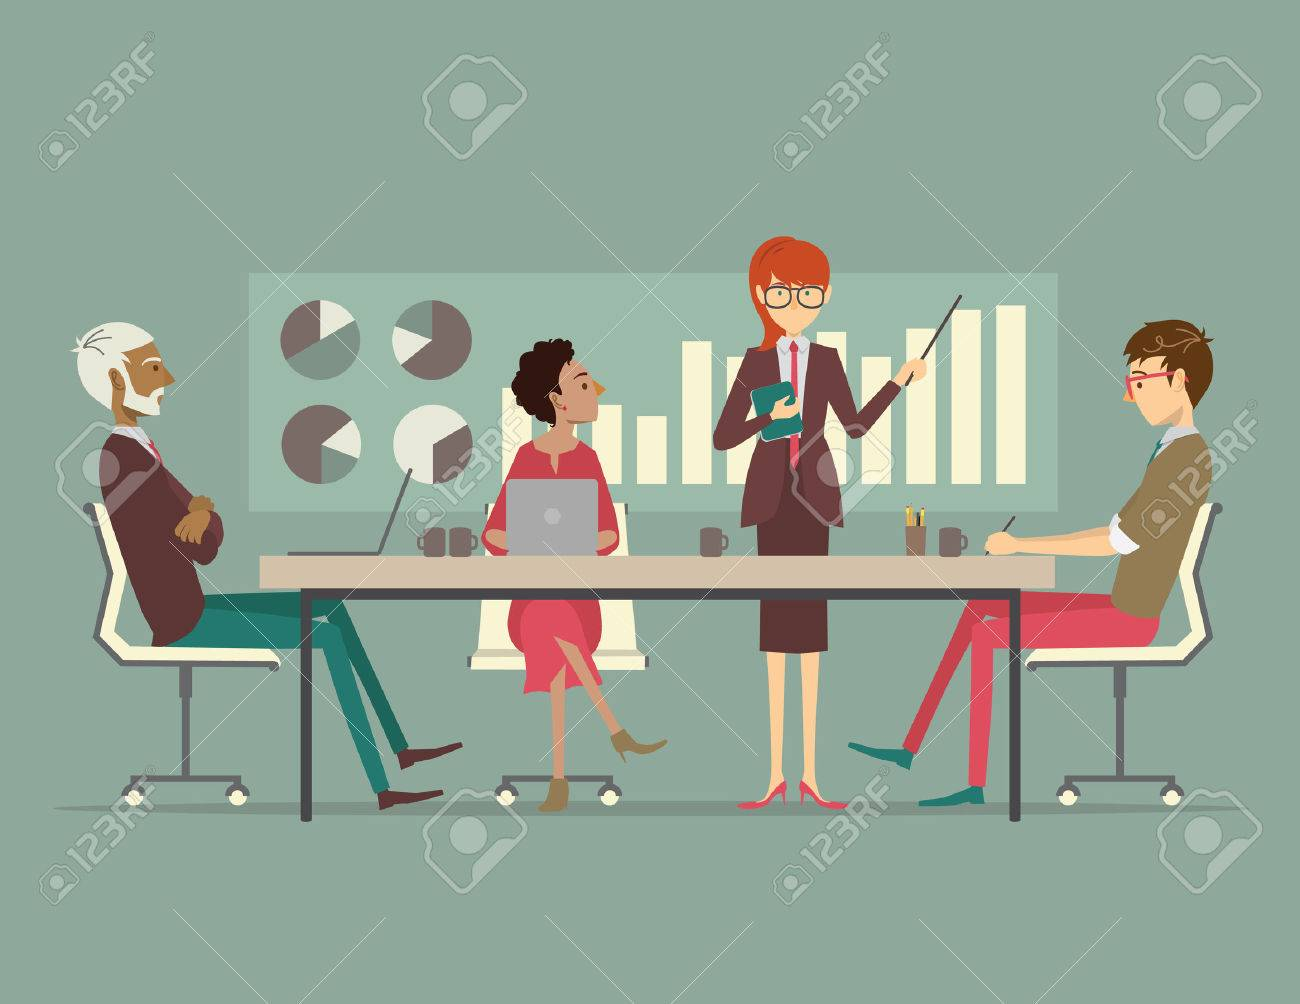 A group of coworkers gathered around a conference table listening to a presentation from a business man. - 37158065